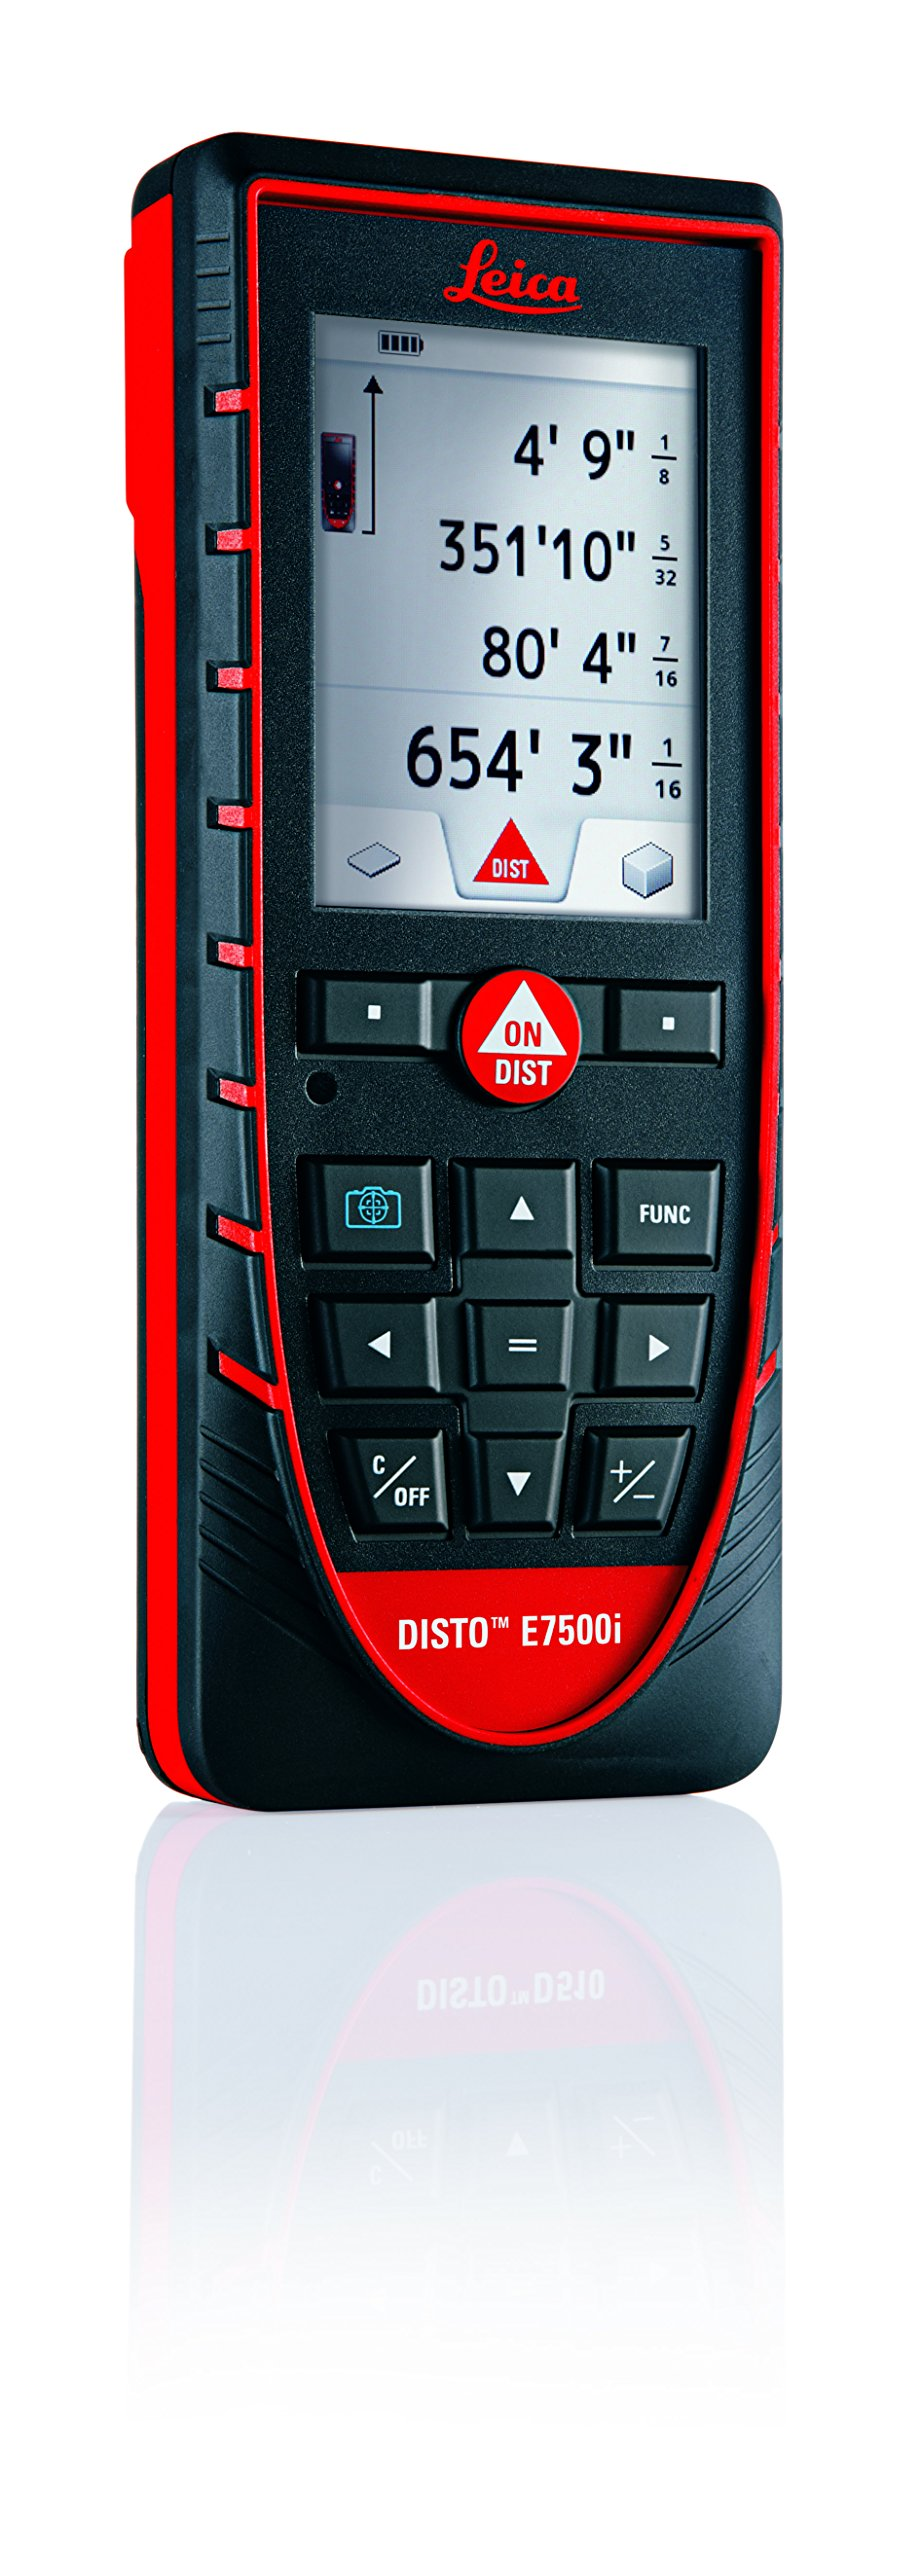 Leica DISTO E7500i 660ft Laser Distance Measure w/Bluetooth & DISTO Sketch iPad iPhone App, Black/Red by Leica Geosystems